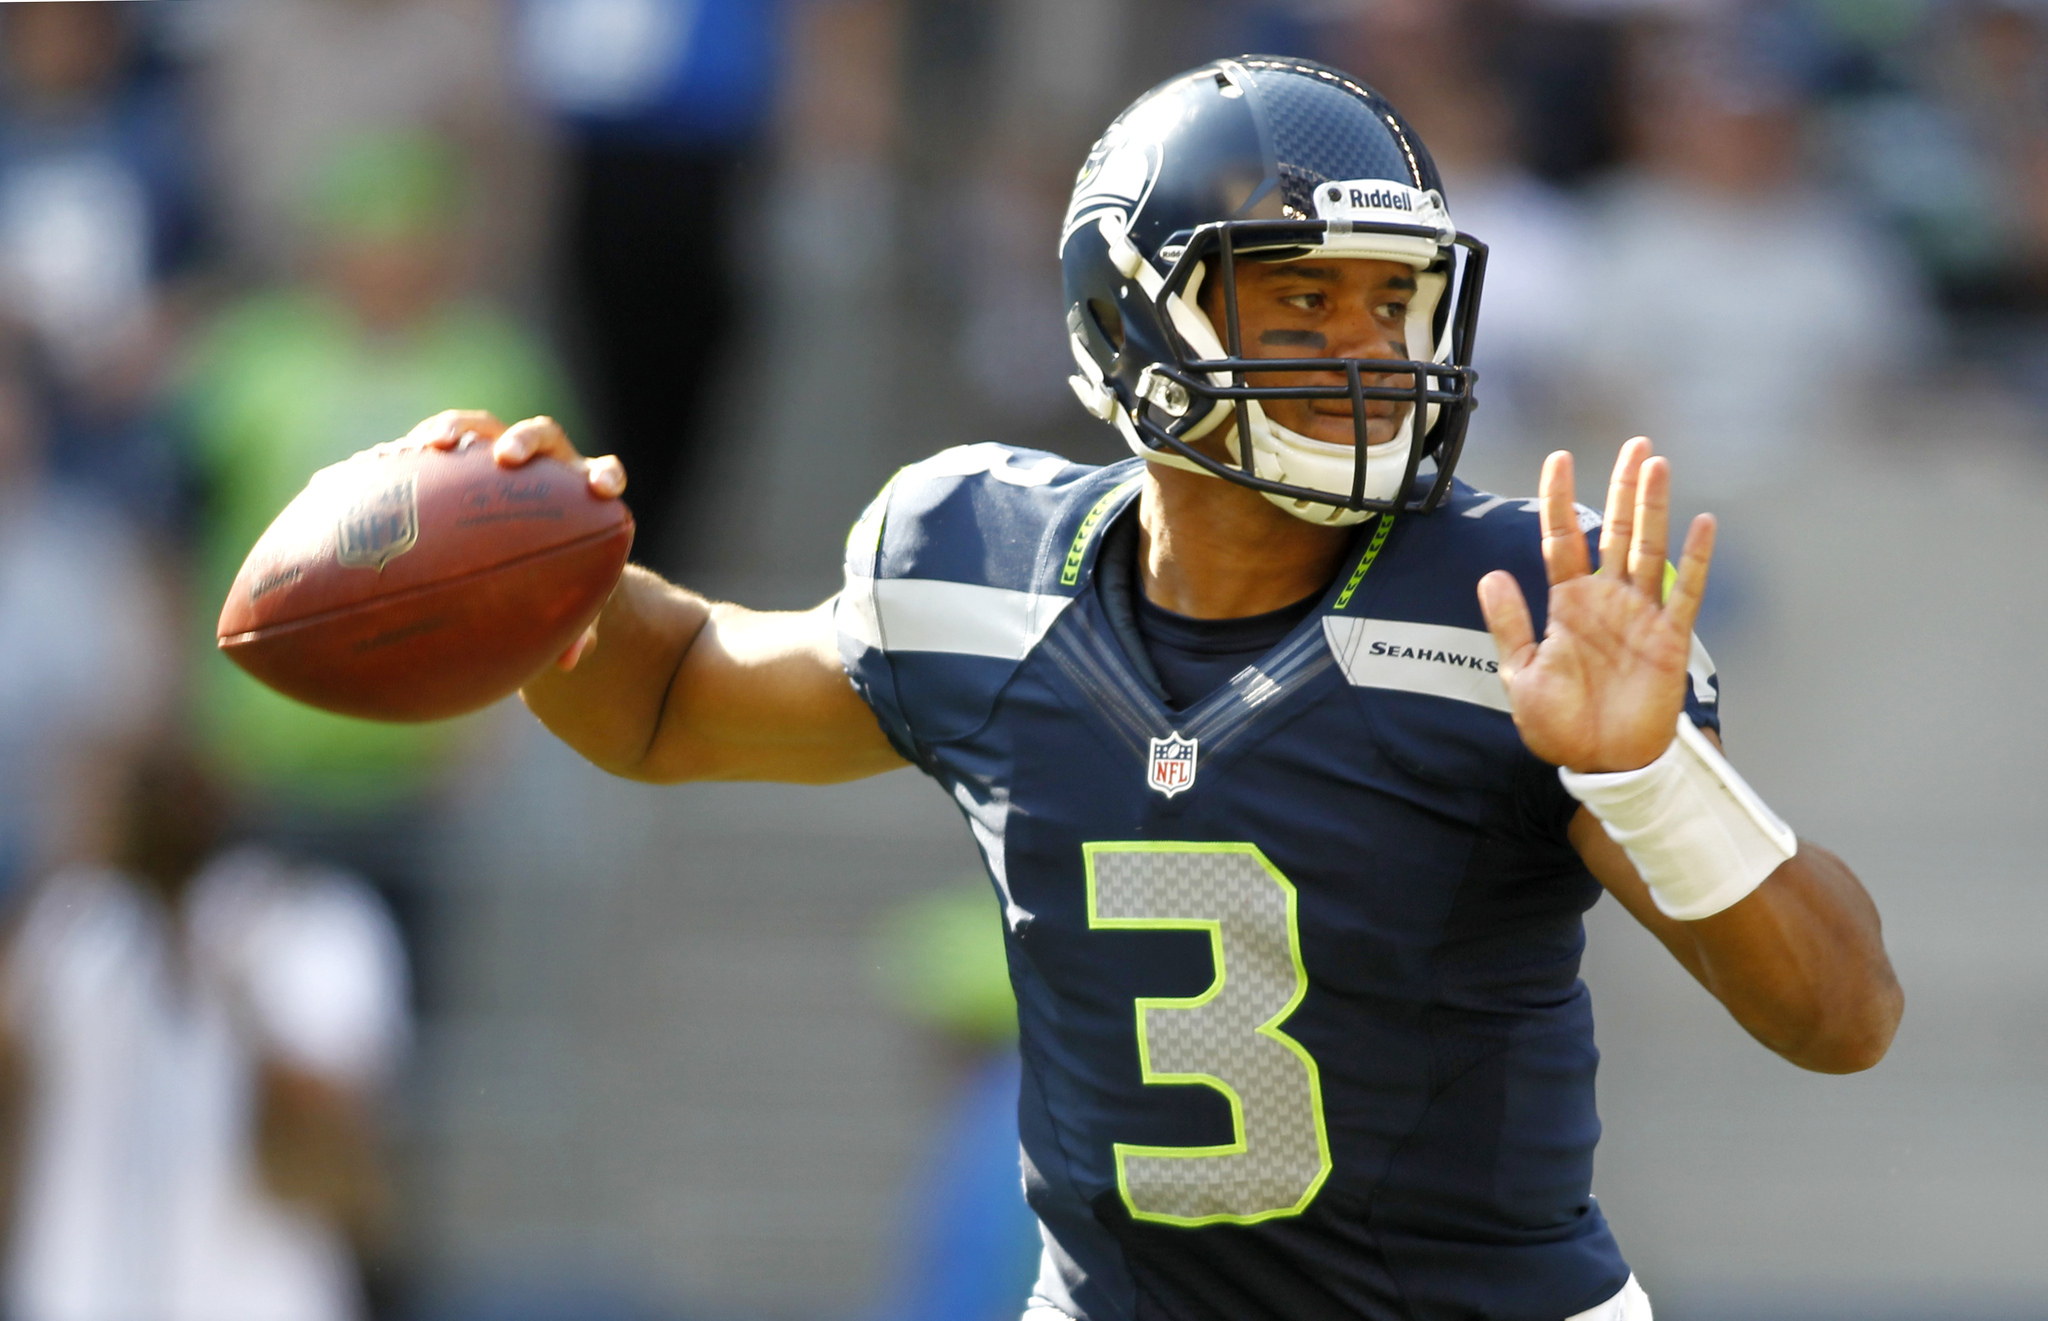 Russell wilson wallpapers high quality download free - Seahawks wallpaper russell wilson ...